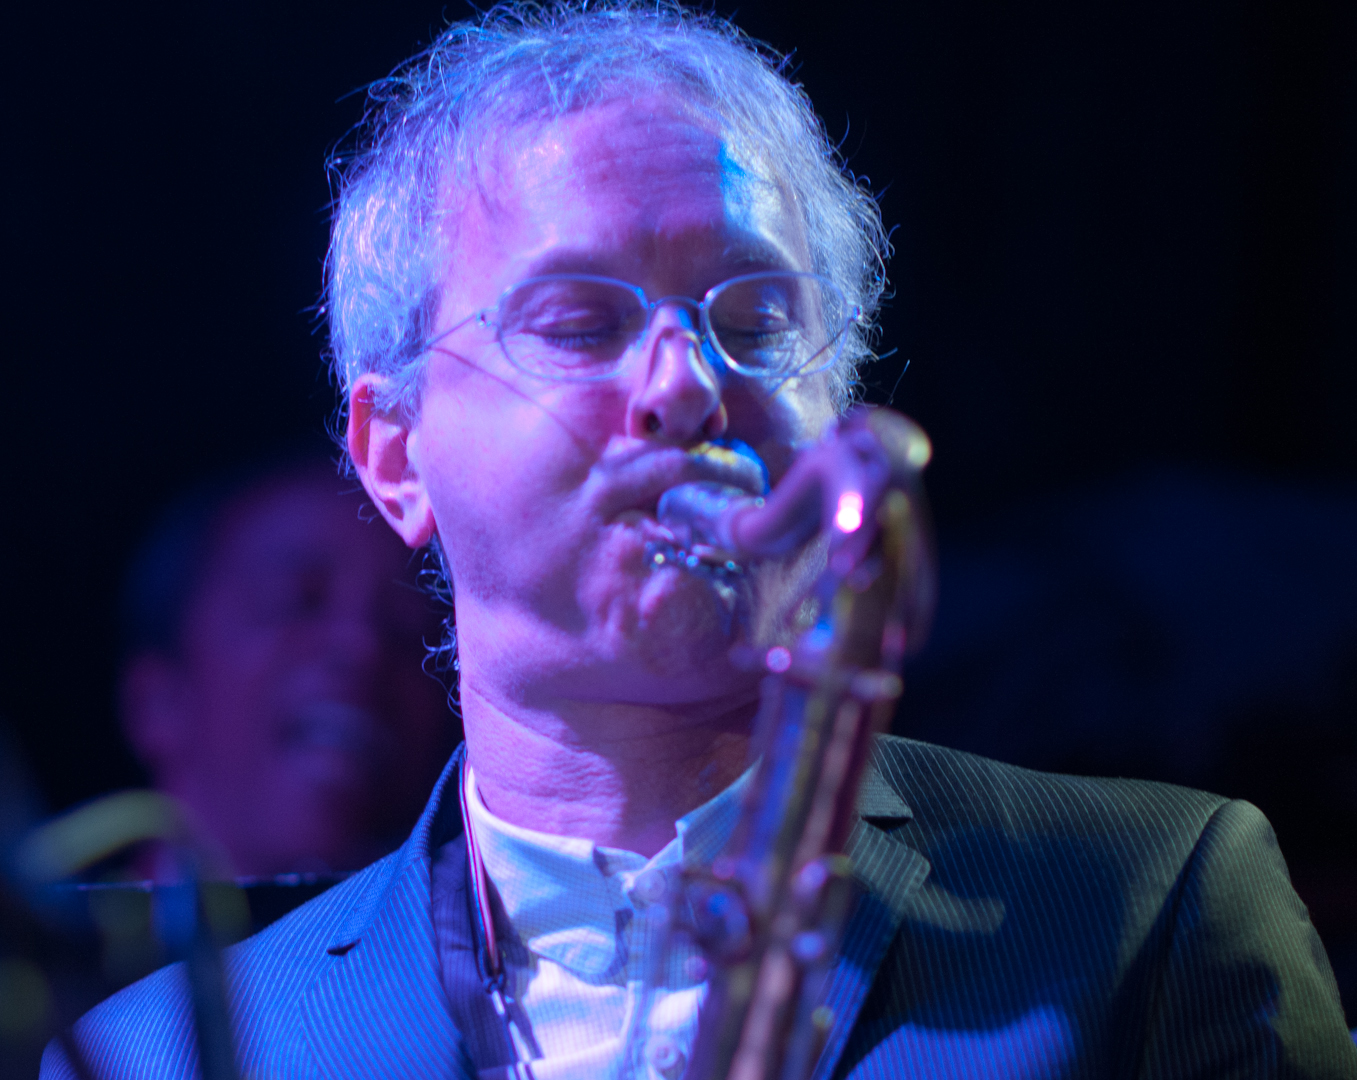 Doug Wieselman with Steven Bernstein's Mto Plays Sly at the Winter Jazzfest 2012